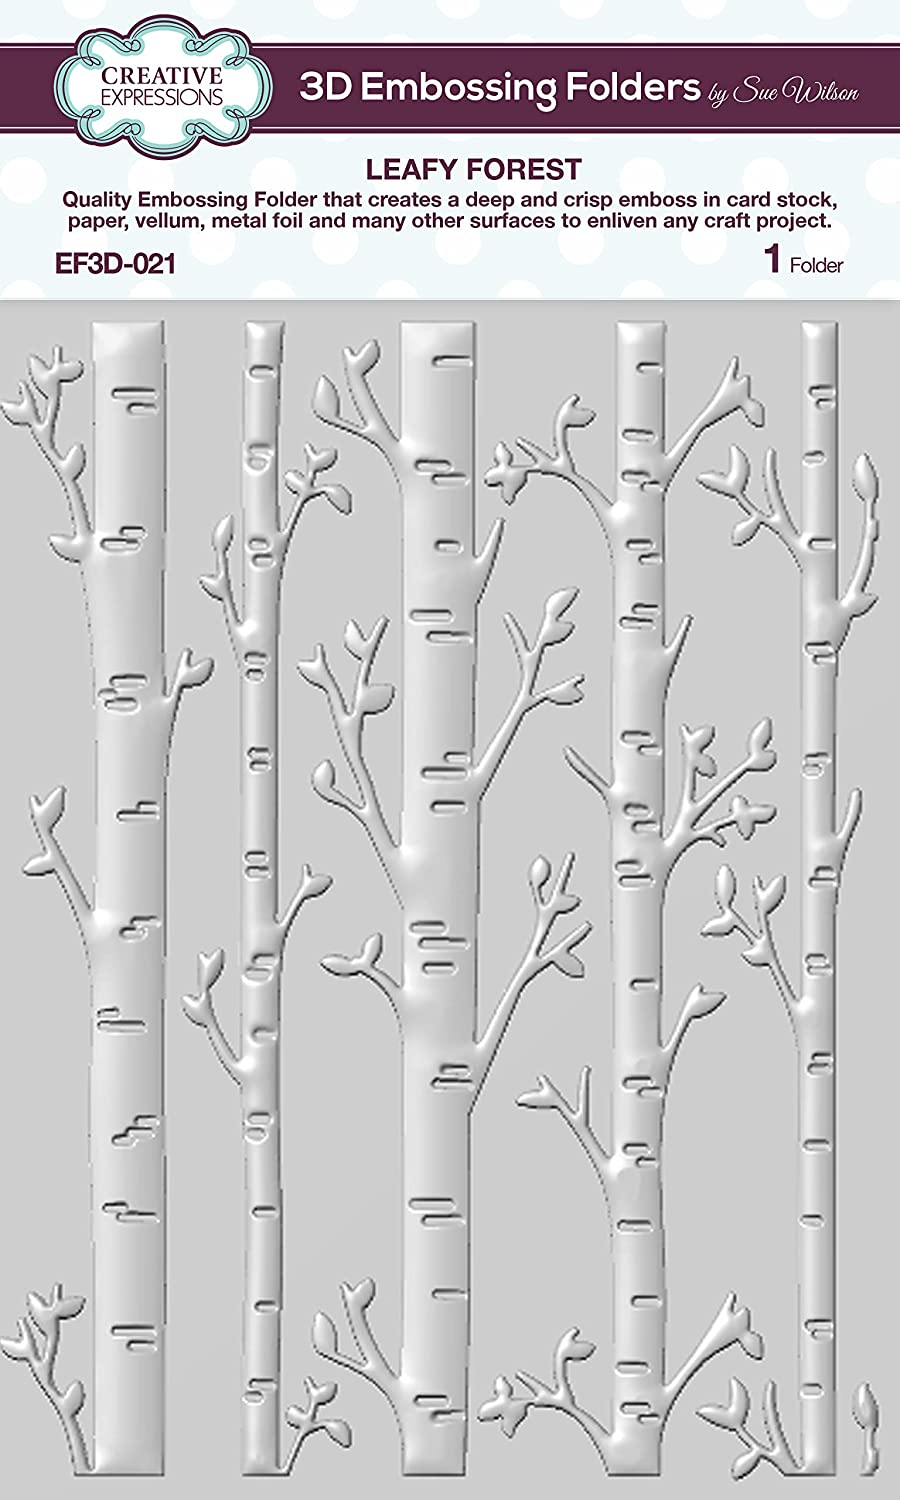 Creative Expressions EF3D021 Leafy Forest 3D Embossing Folder